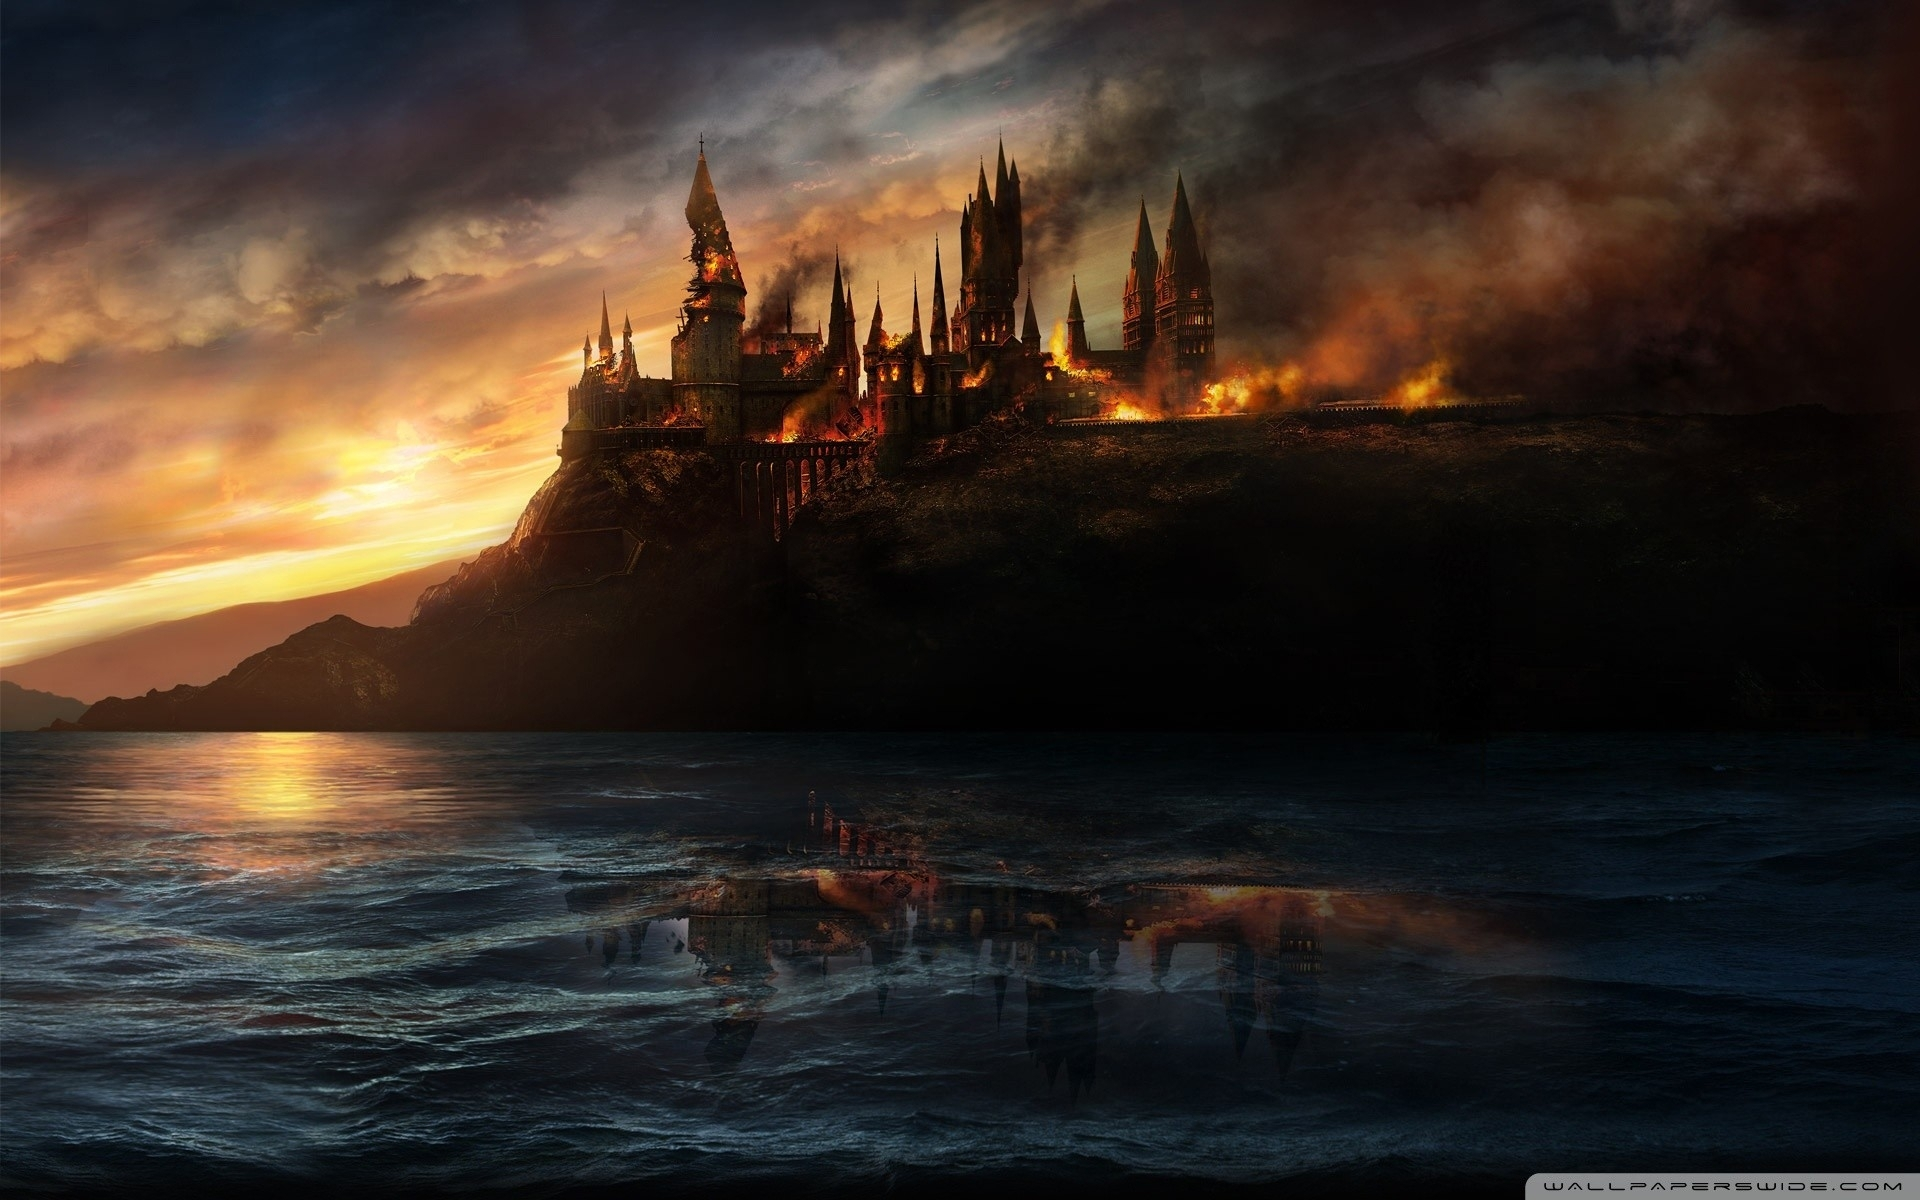 10 Top Harry Potter Wallpaper Hd Hogwarts FULL HD 1920×1080 For PC Desktop